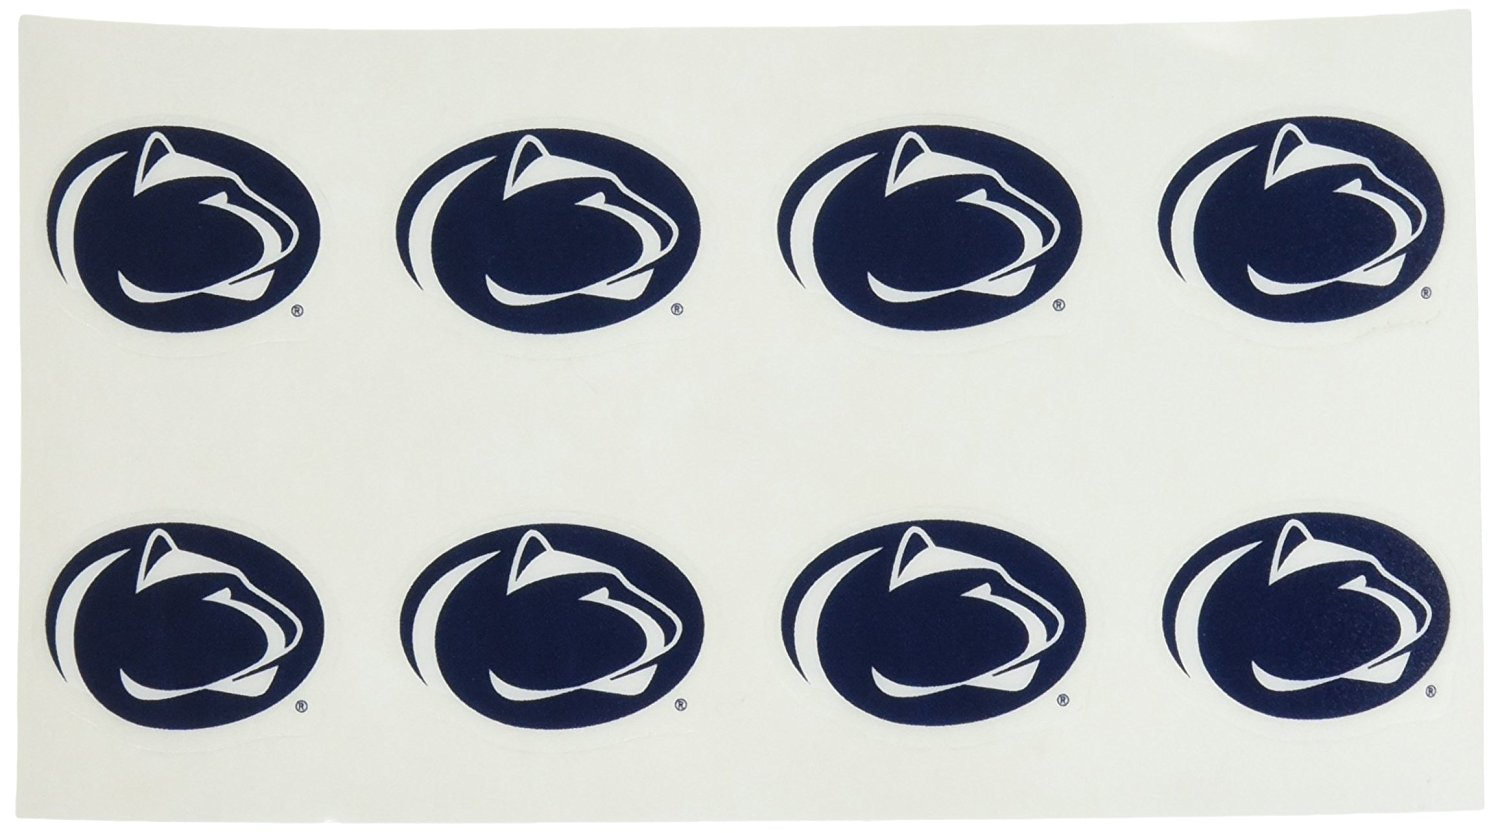 Penn State Fan. Nittany Lions Face Tattoos